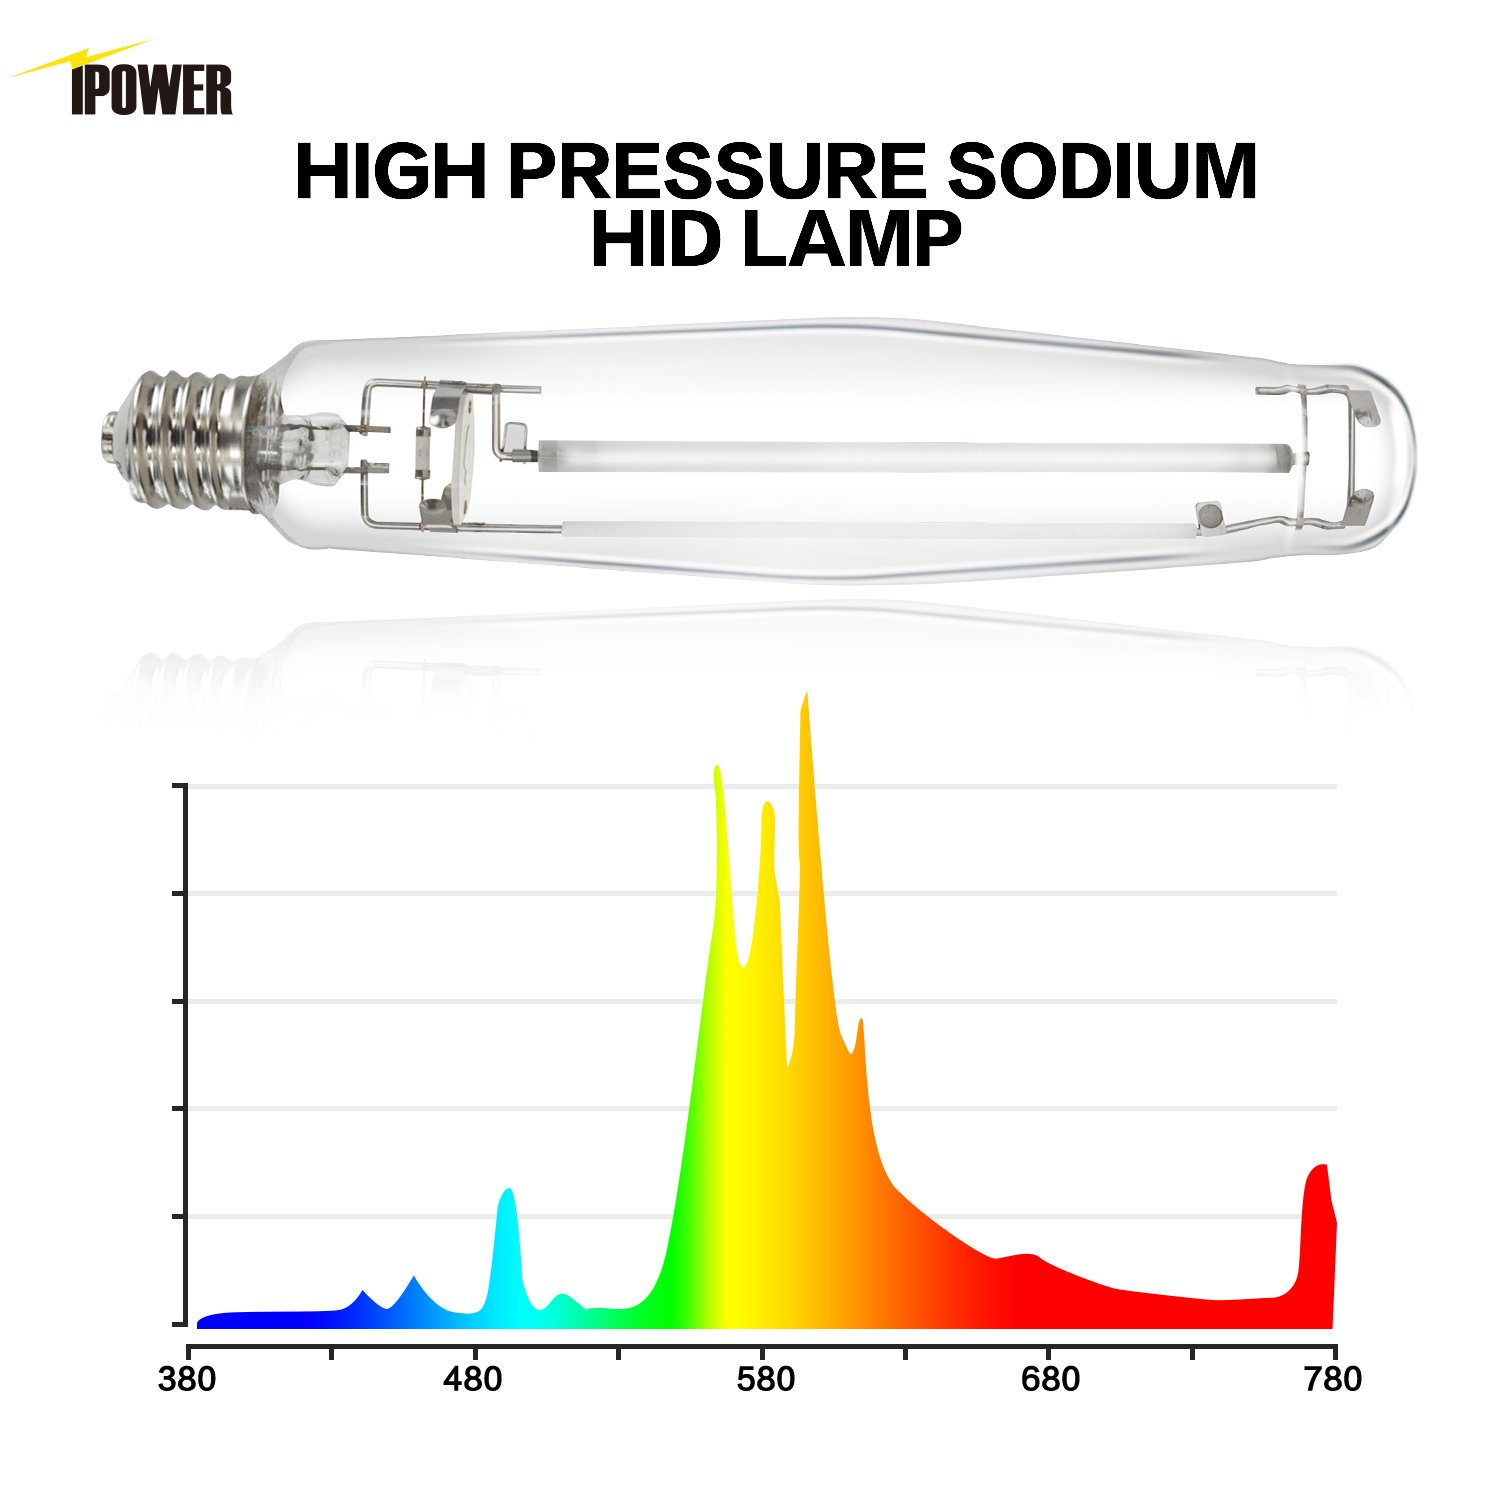 Ipower 1000 Watt High Pressure Sodium Hps Grow Light 1000w Ballast Wiring Diagram Bulb Lamp Par Enhanced Red And Orange Spectrums Cct 2100k Plant Growing